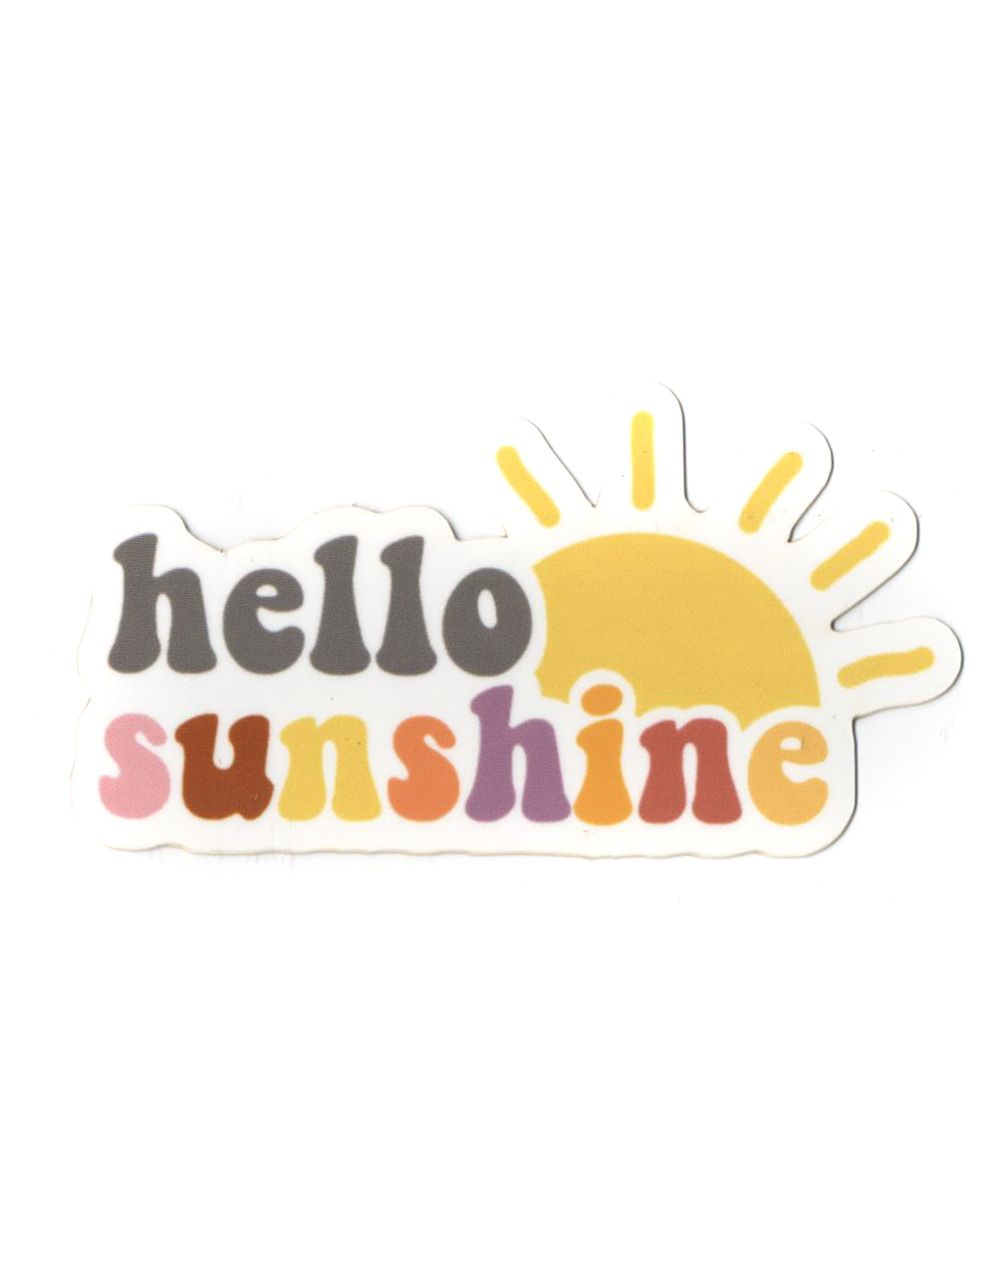 ACS Aesthetic Hello Sunshine sticker. Approx dimensions: 3.5